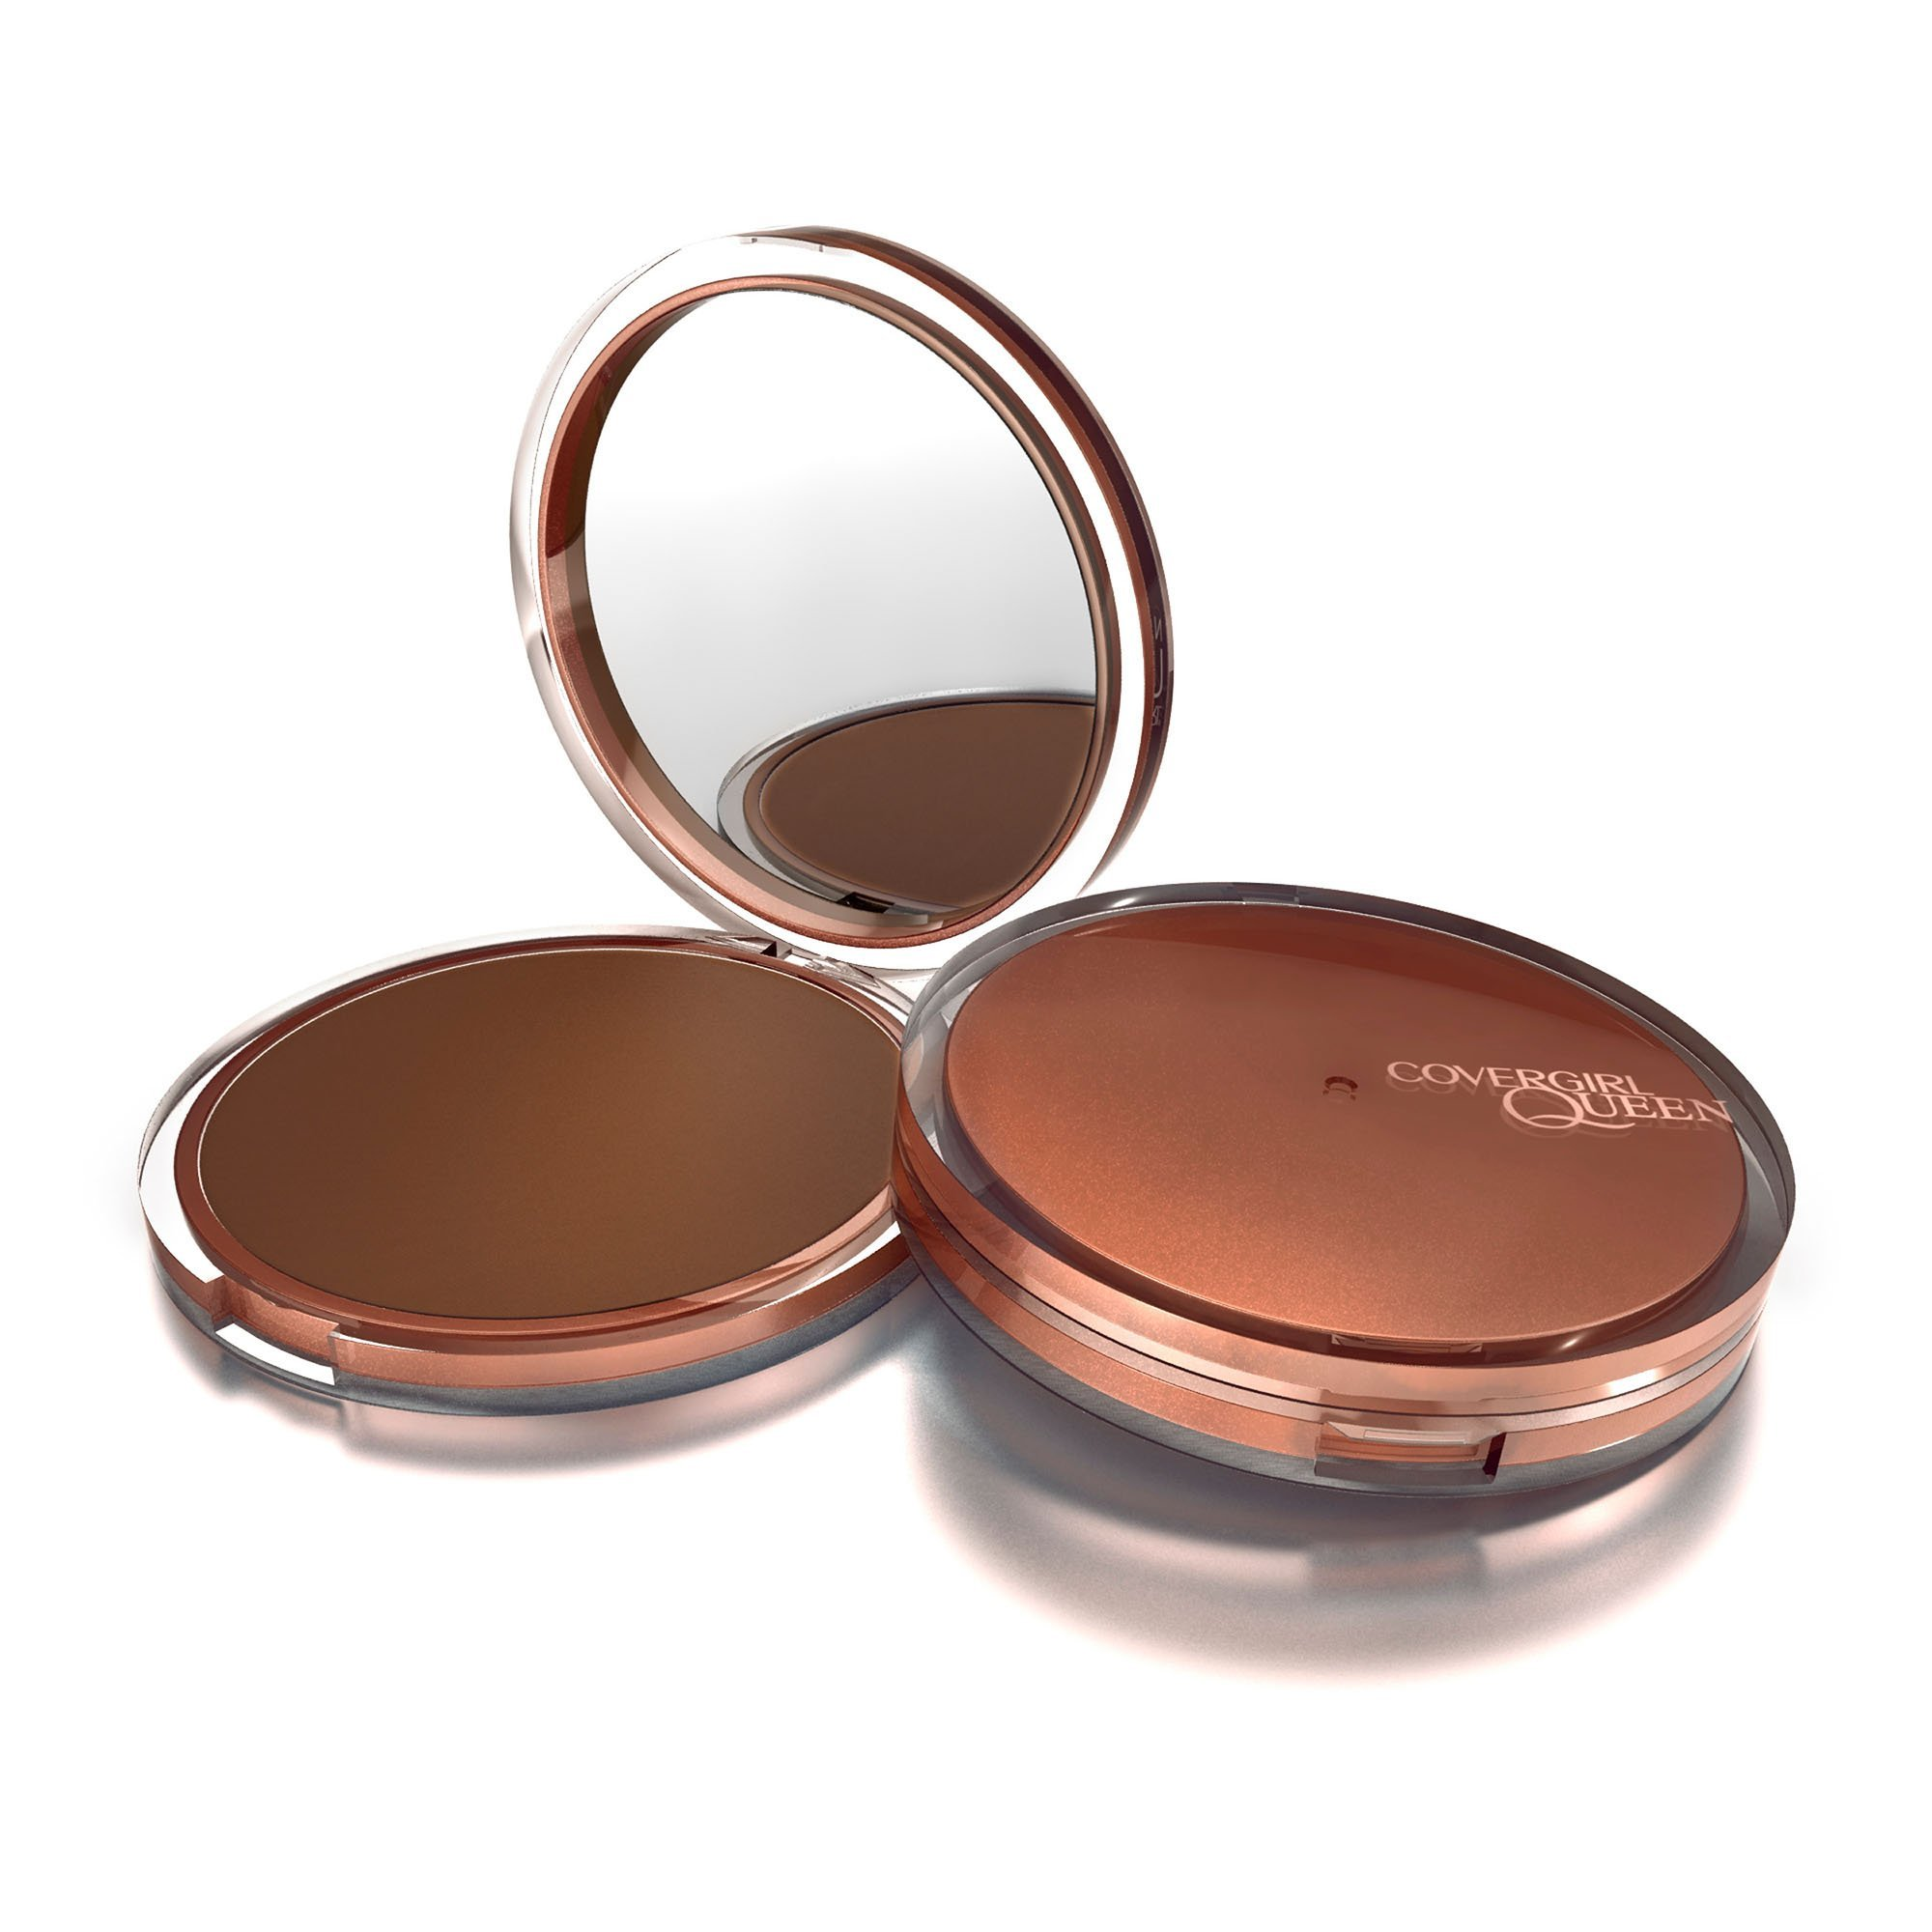 COVERGIRL Queen Collection Natural Hue Mineral Bronzer in Ebony Bronze by COVERGIRL (Image #2)